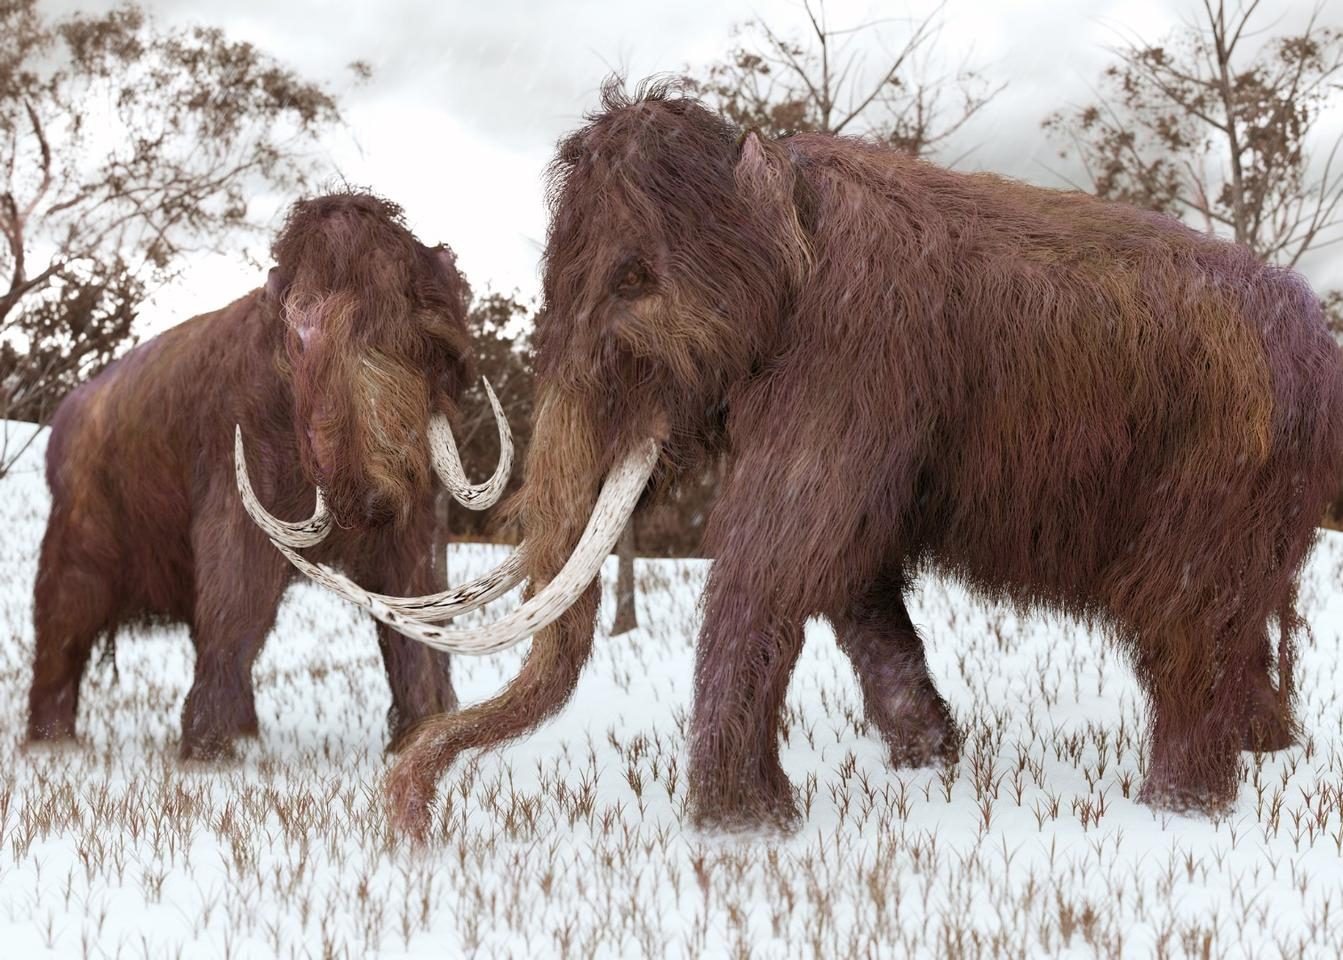 Wooly mammoths had tusks that could reach 15 feet (5 meters) in length